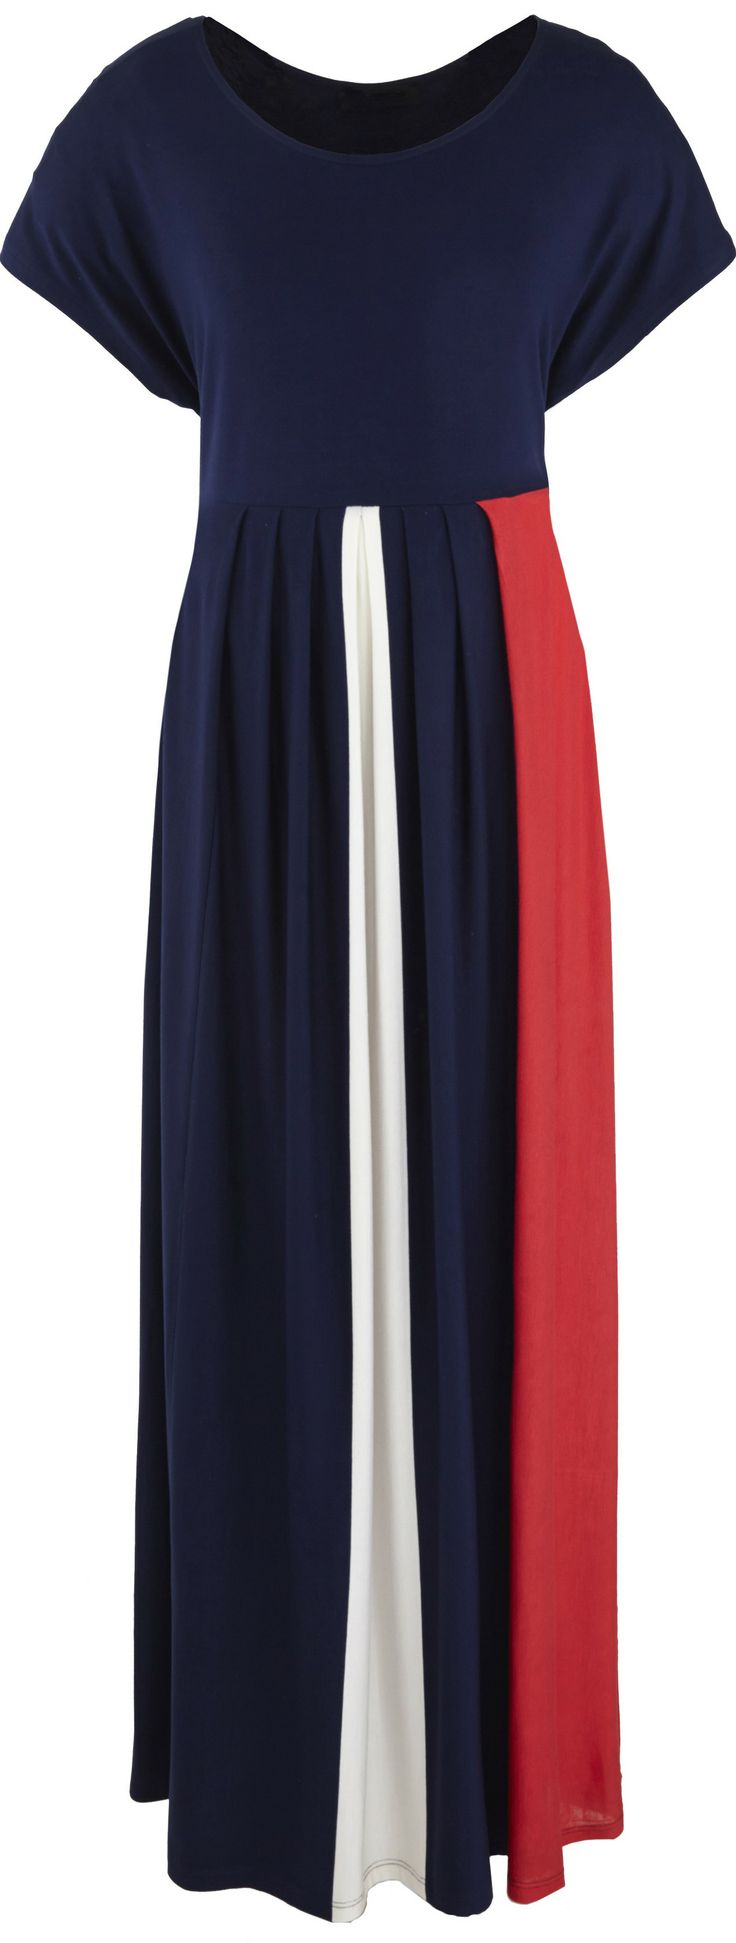 nice cruise dress - nautical plus size